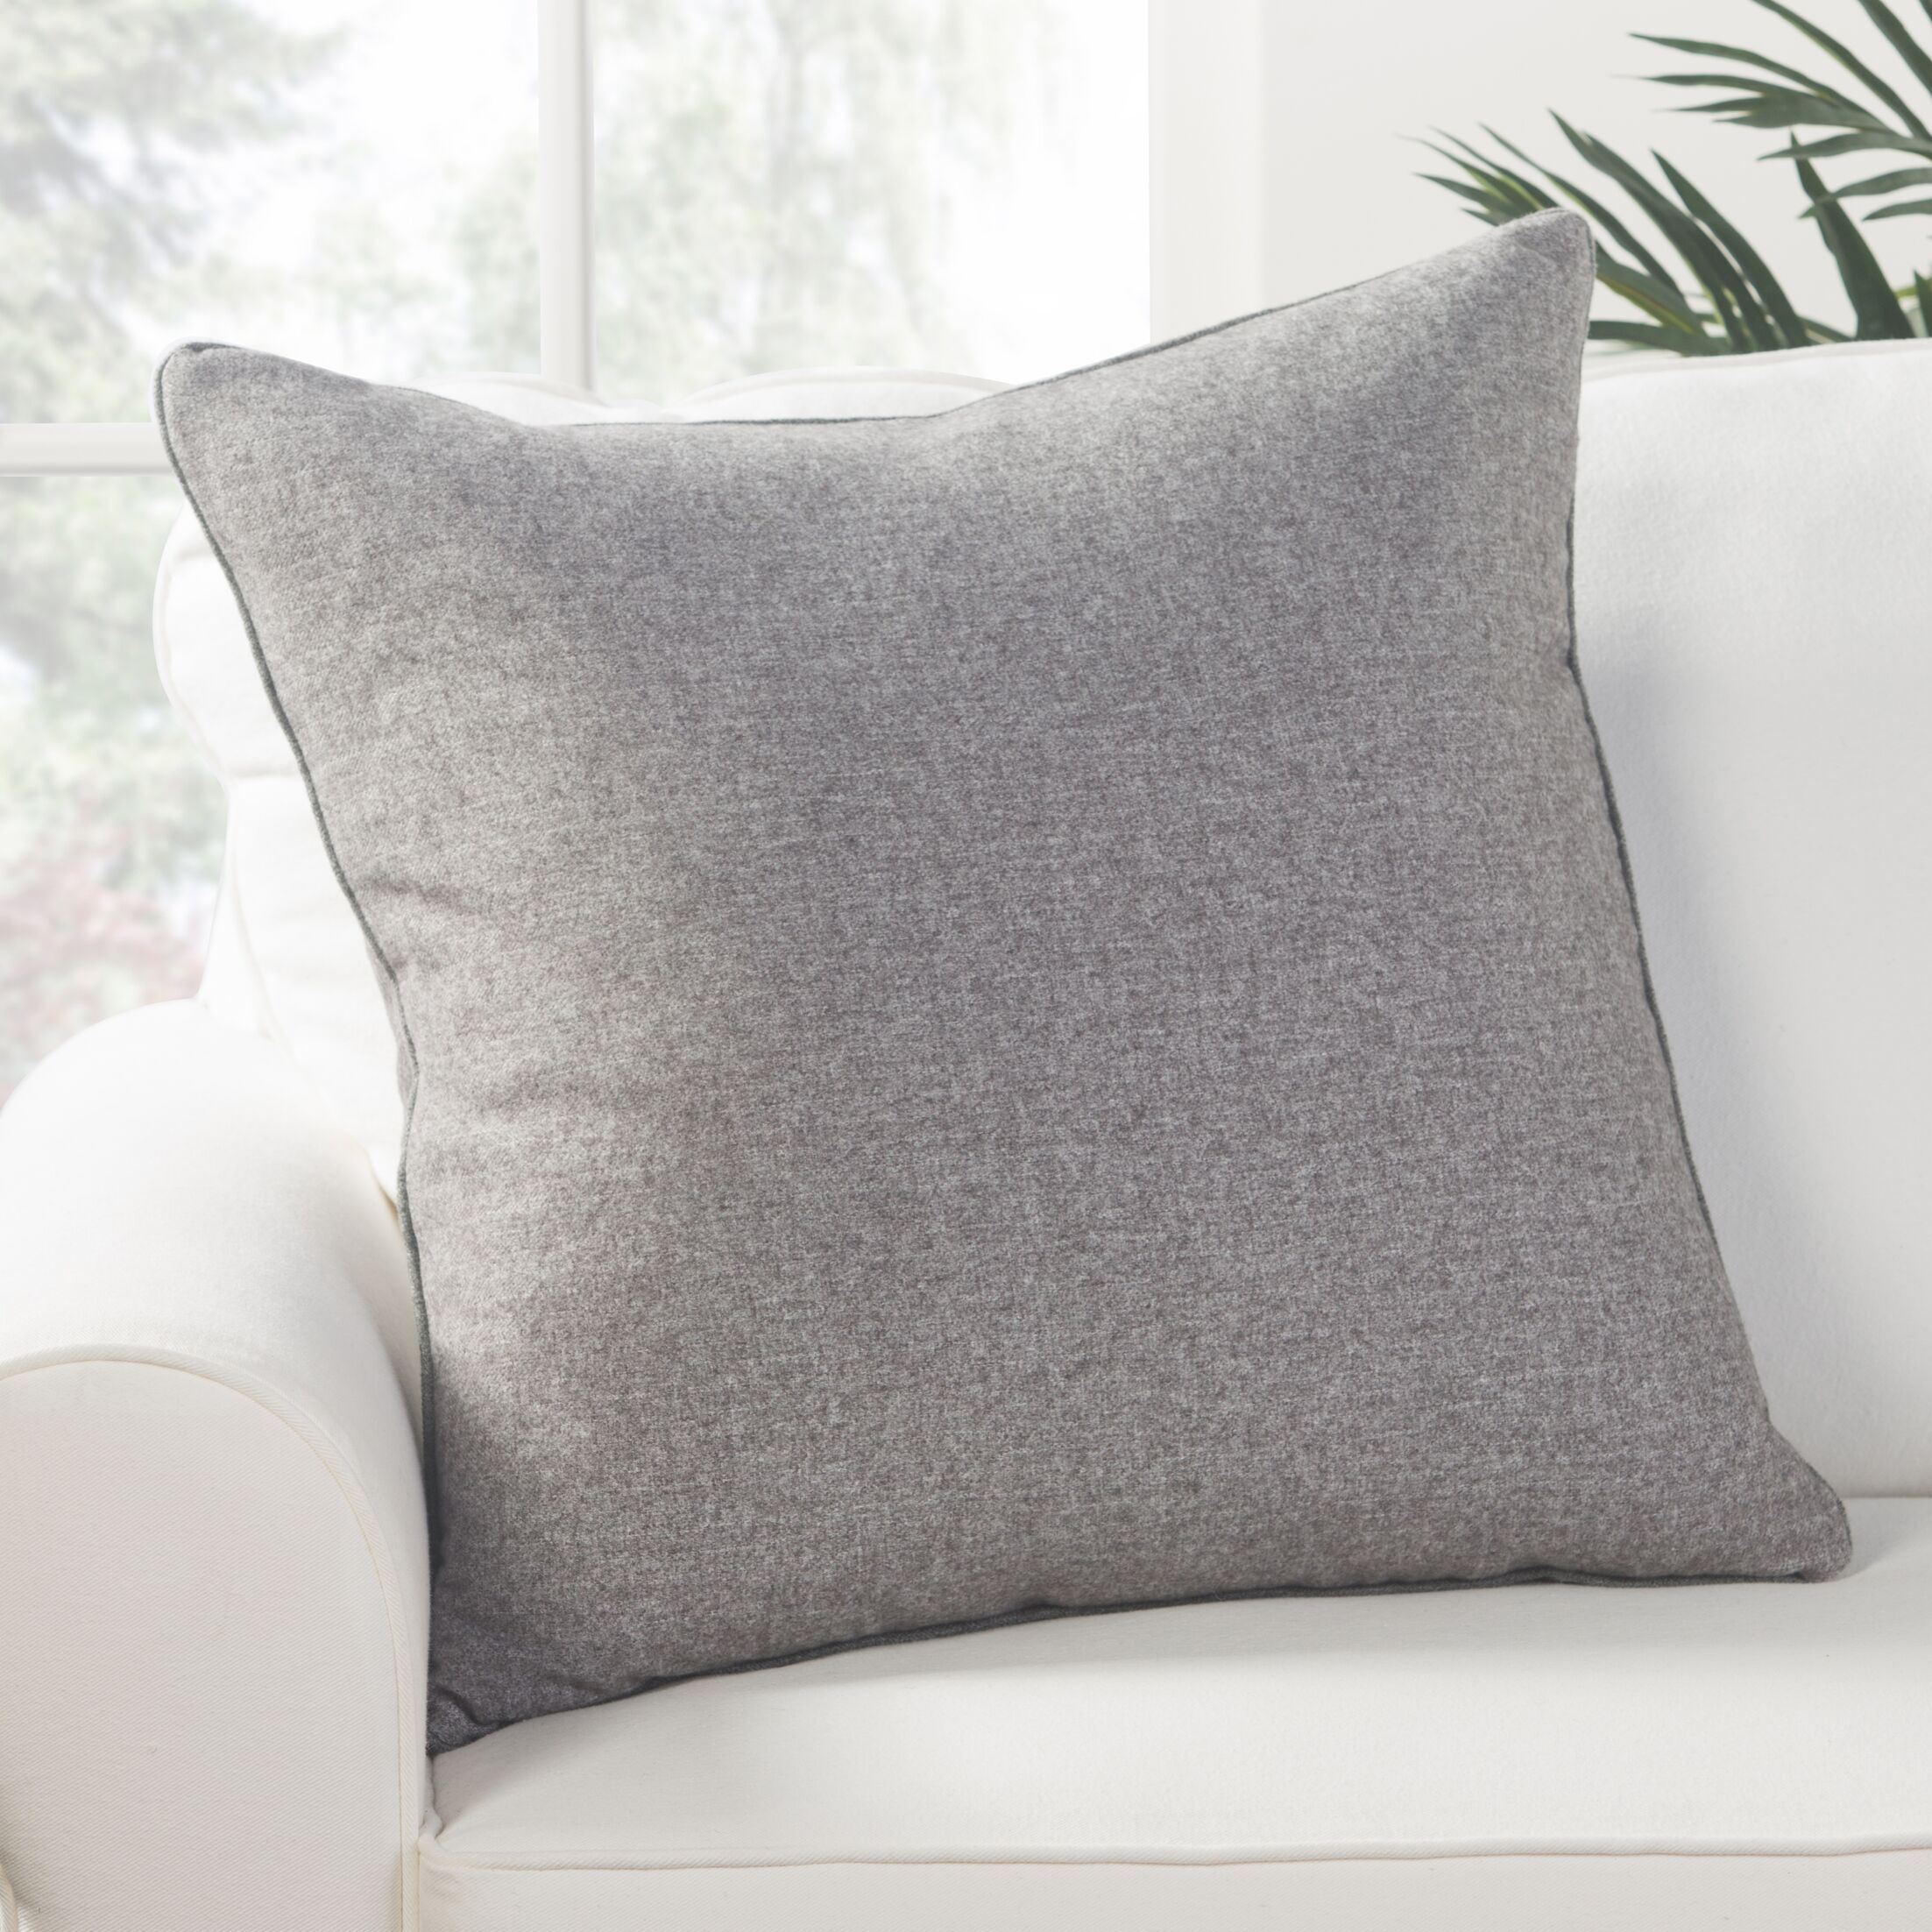 Witherell Throw Pillow Fill Material: Down